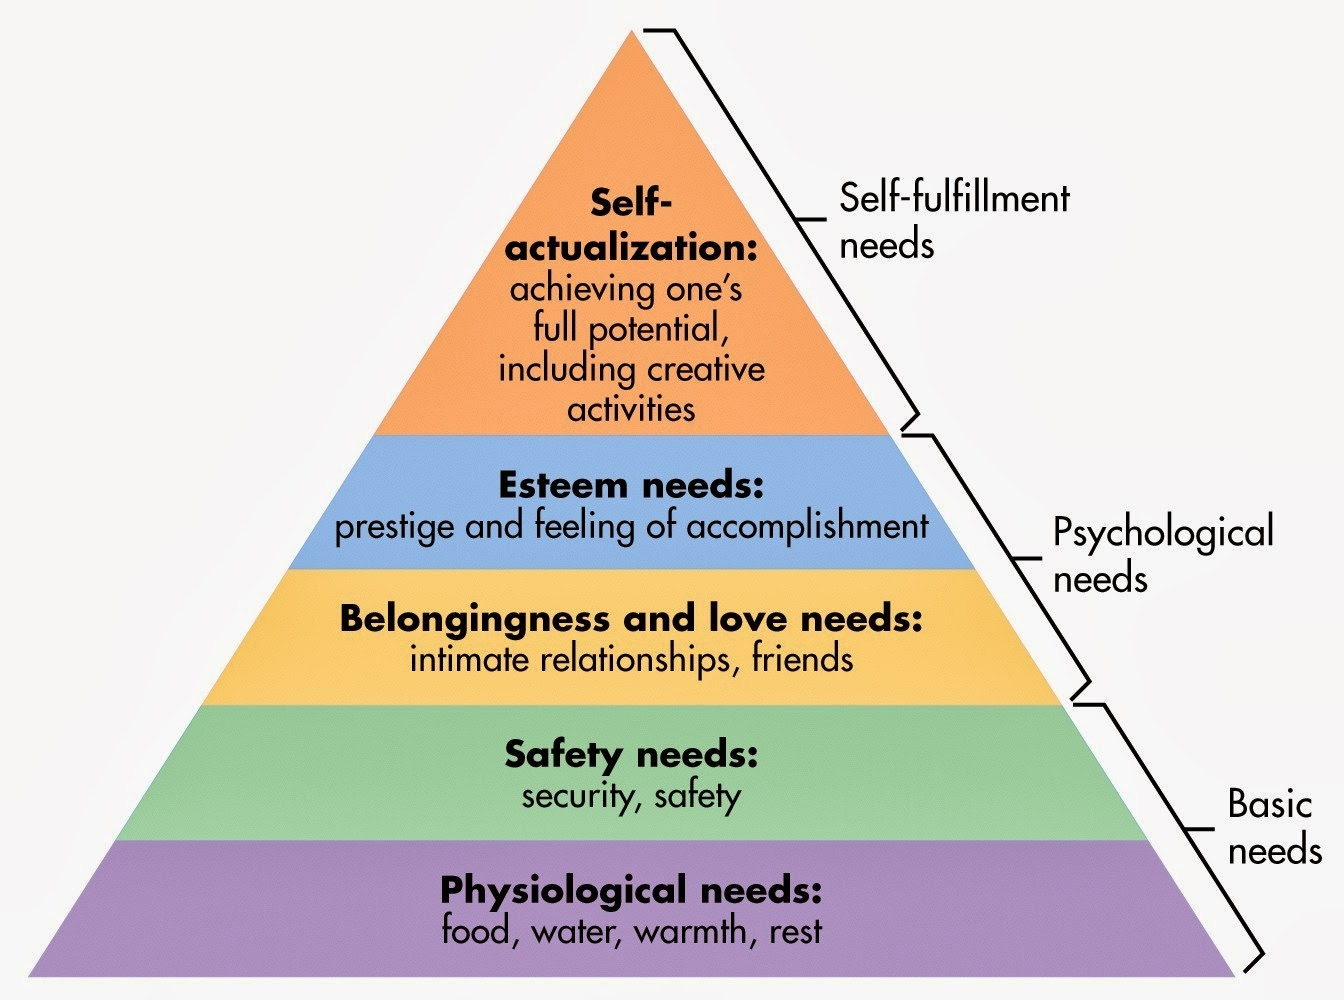 application of maslows theory of needs Maslow's hierarchy of needs refers to developmental psychologist abraham maslow's theory of human behavior and its underlying motivators maslow originally proposed his theory in 1943 and published a comprehensive description of it in his 1954 book motivation and personality.